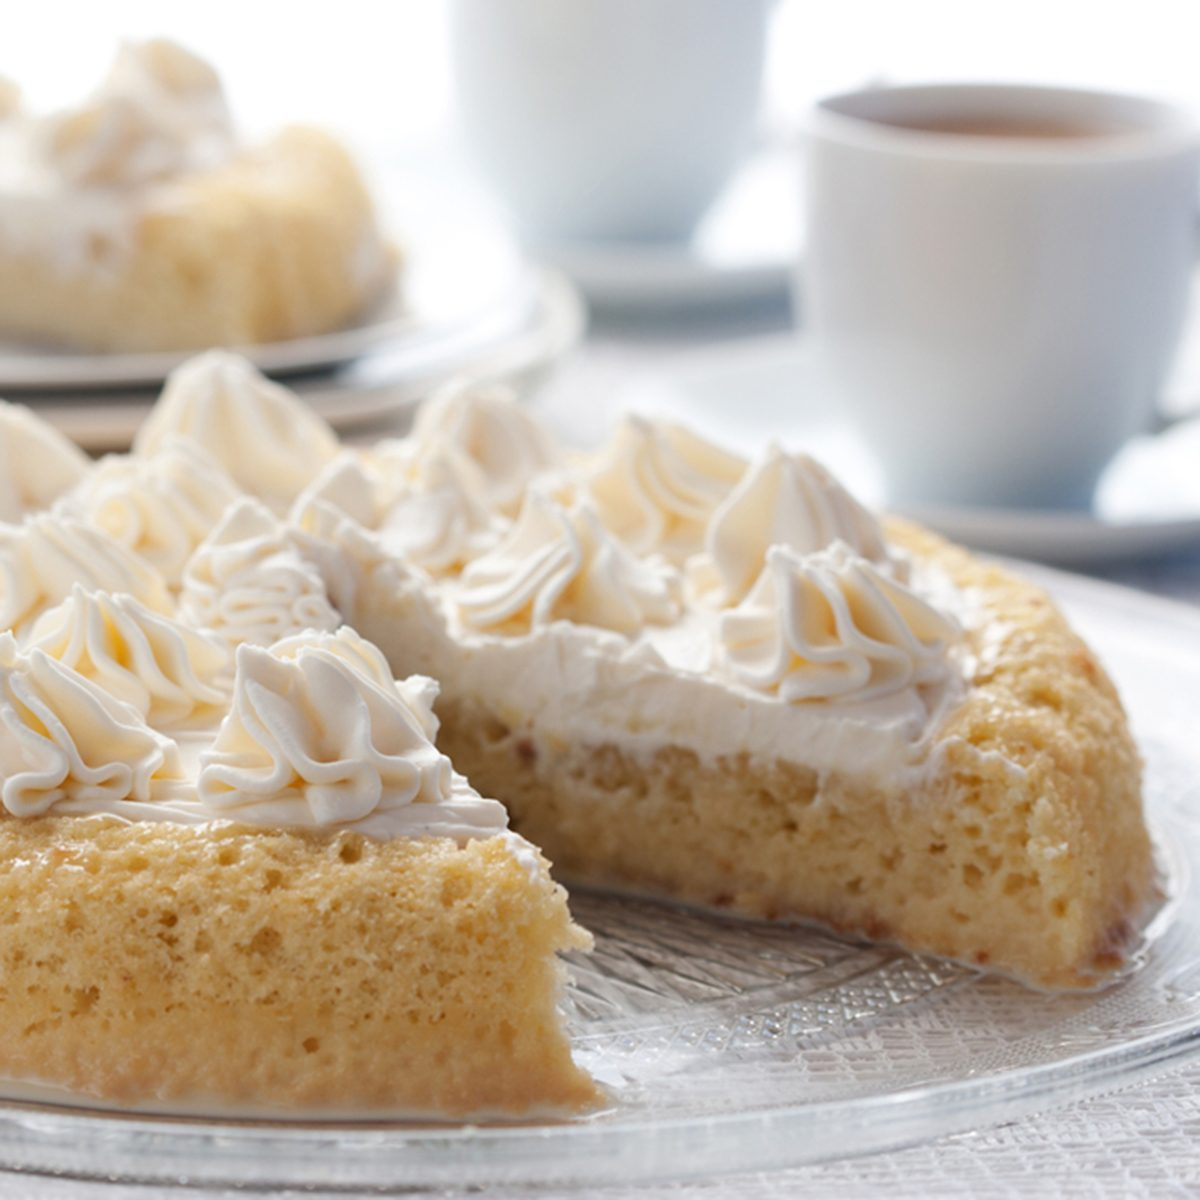 Can You Use Evaporated Milk In Cake Mix